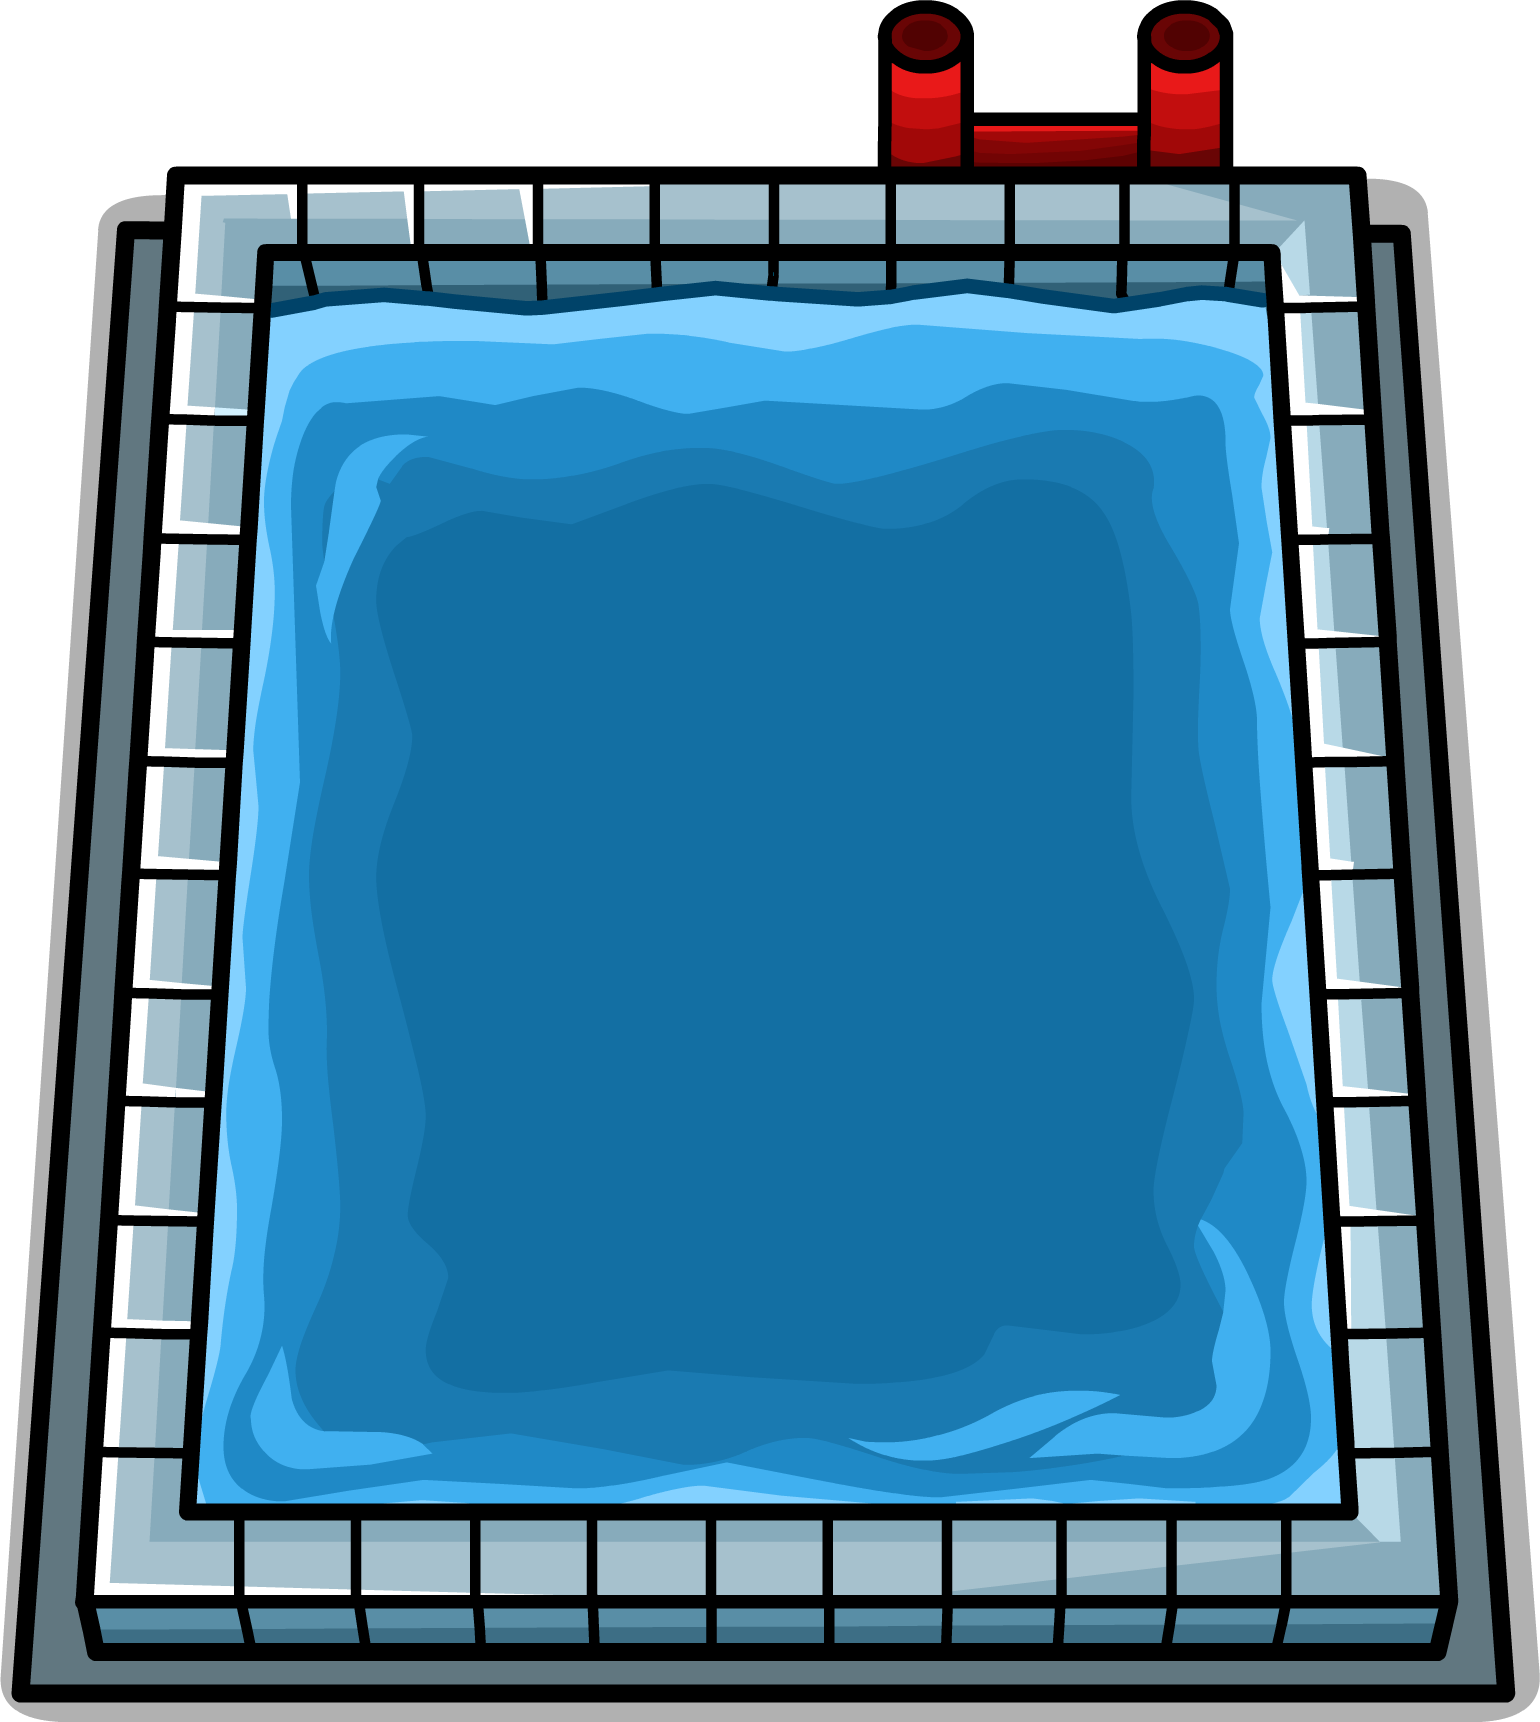 Swimming pool clipart png. Image sprite club penguin